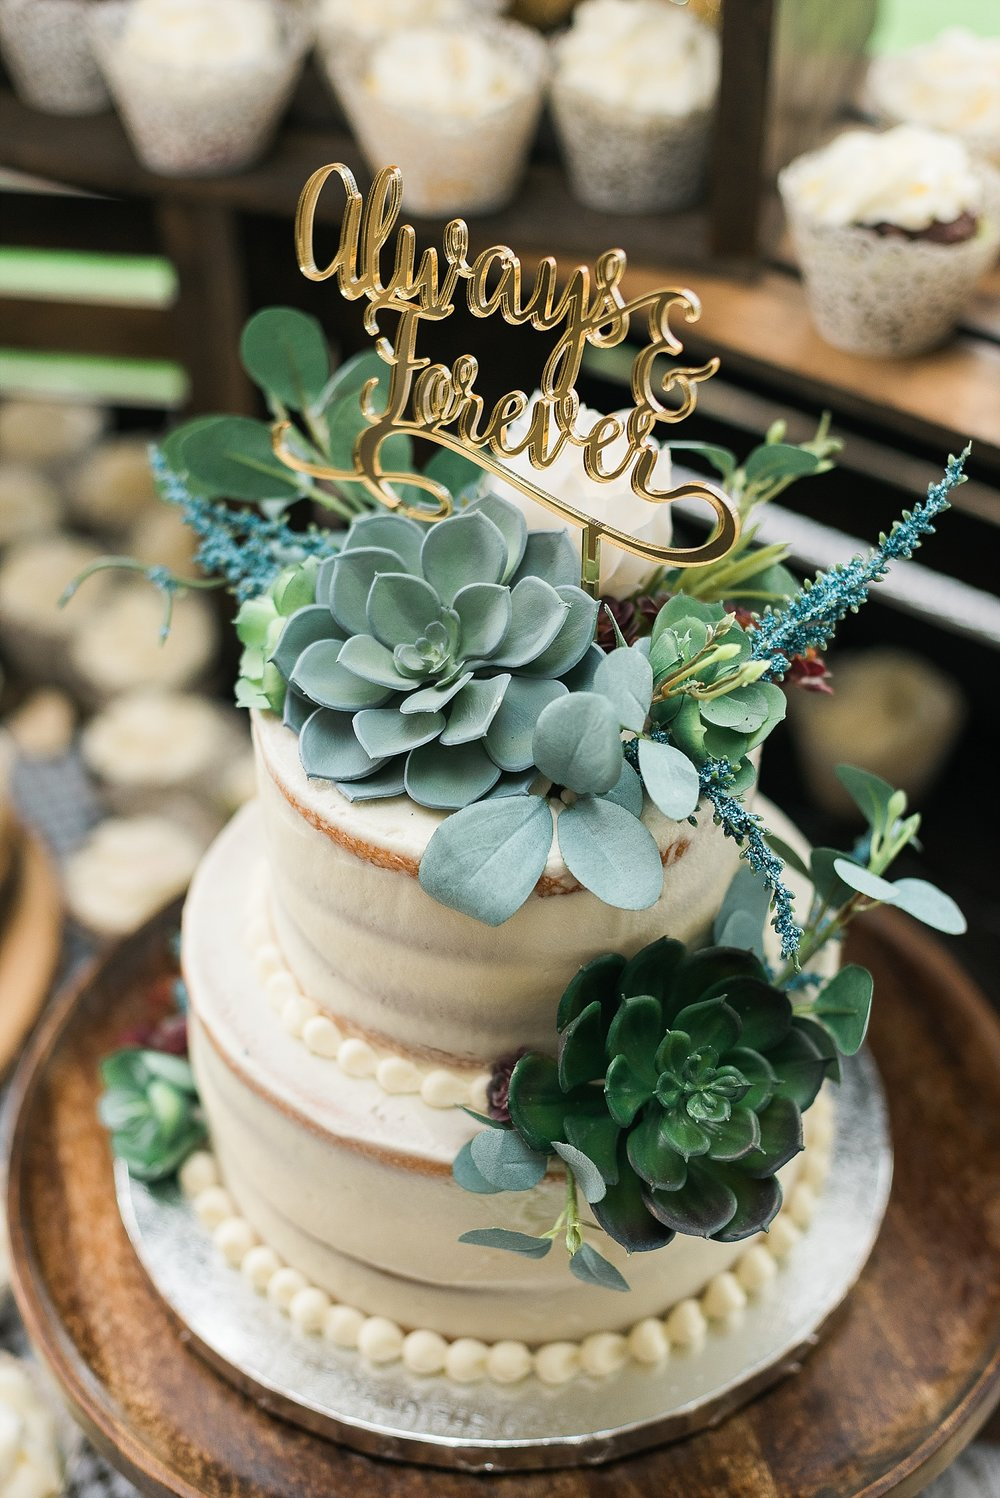 Obsessed with this cake by Sweets by Cindy!